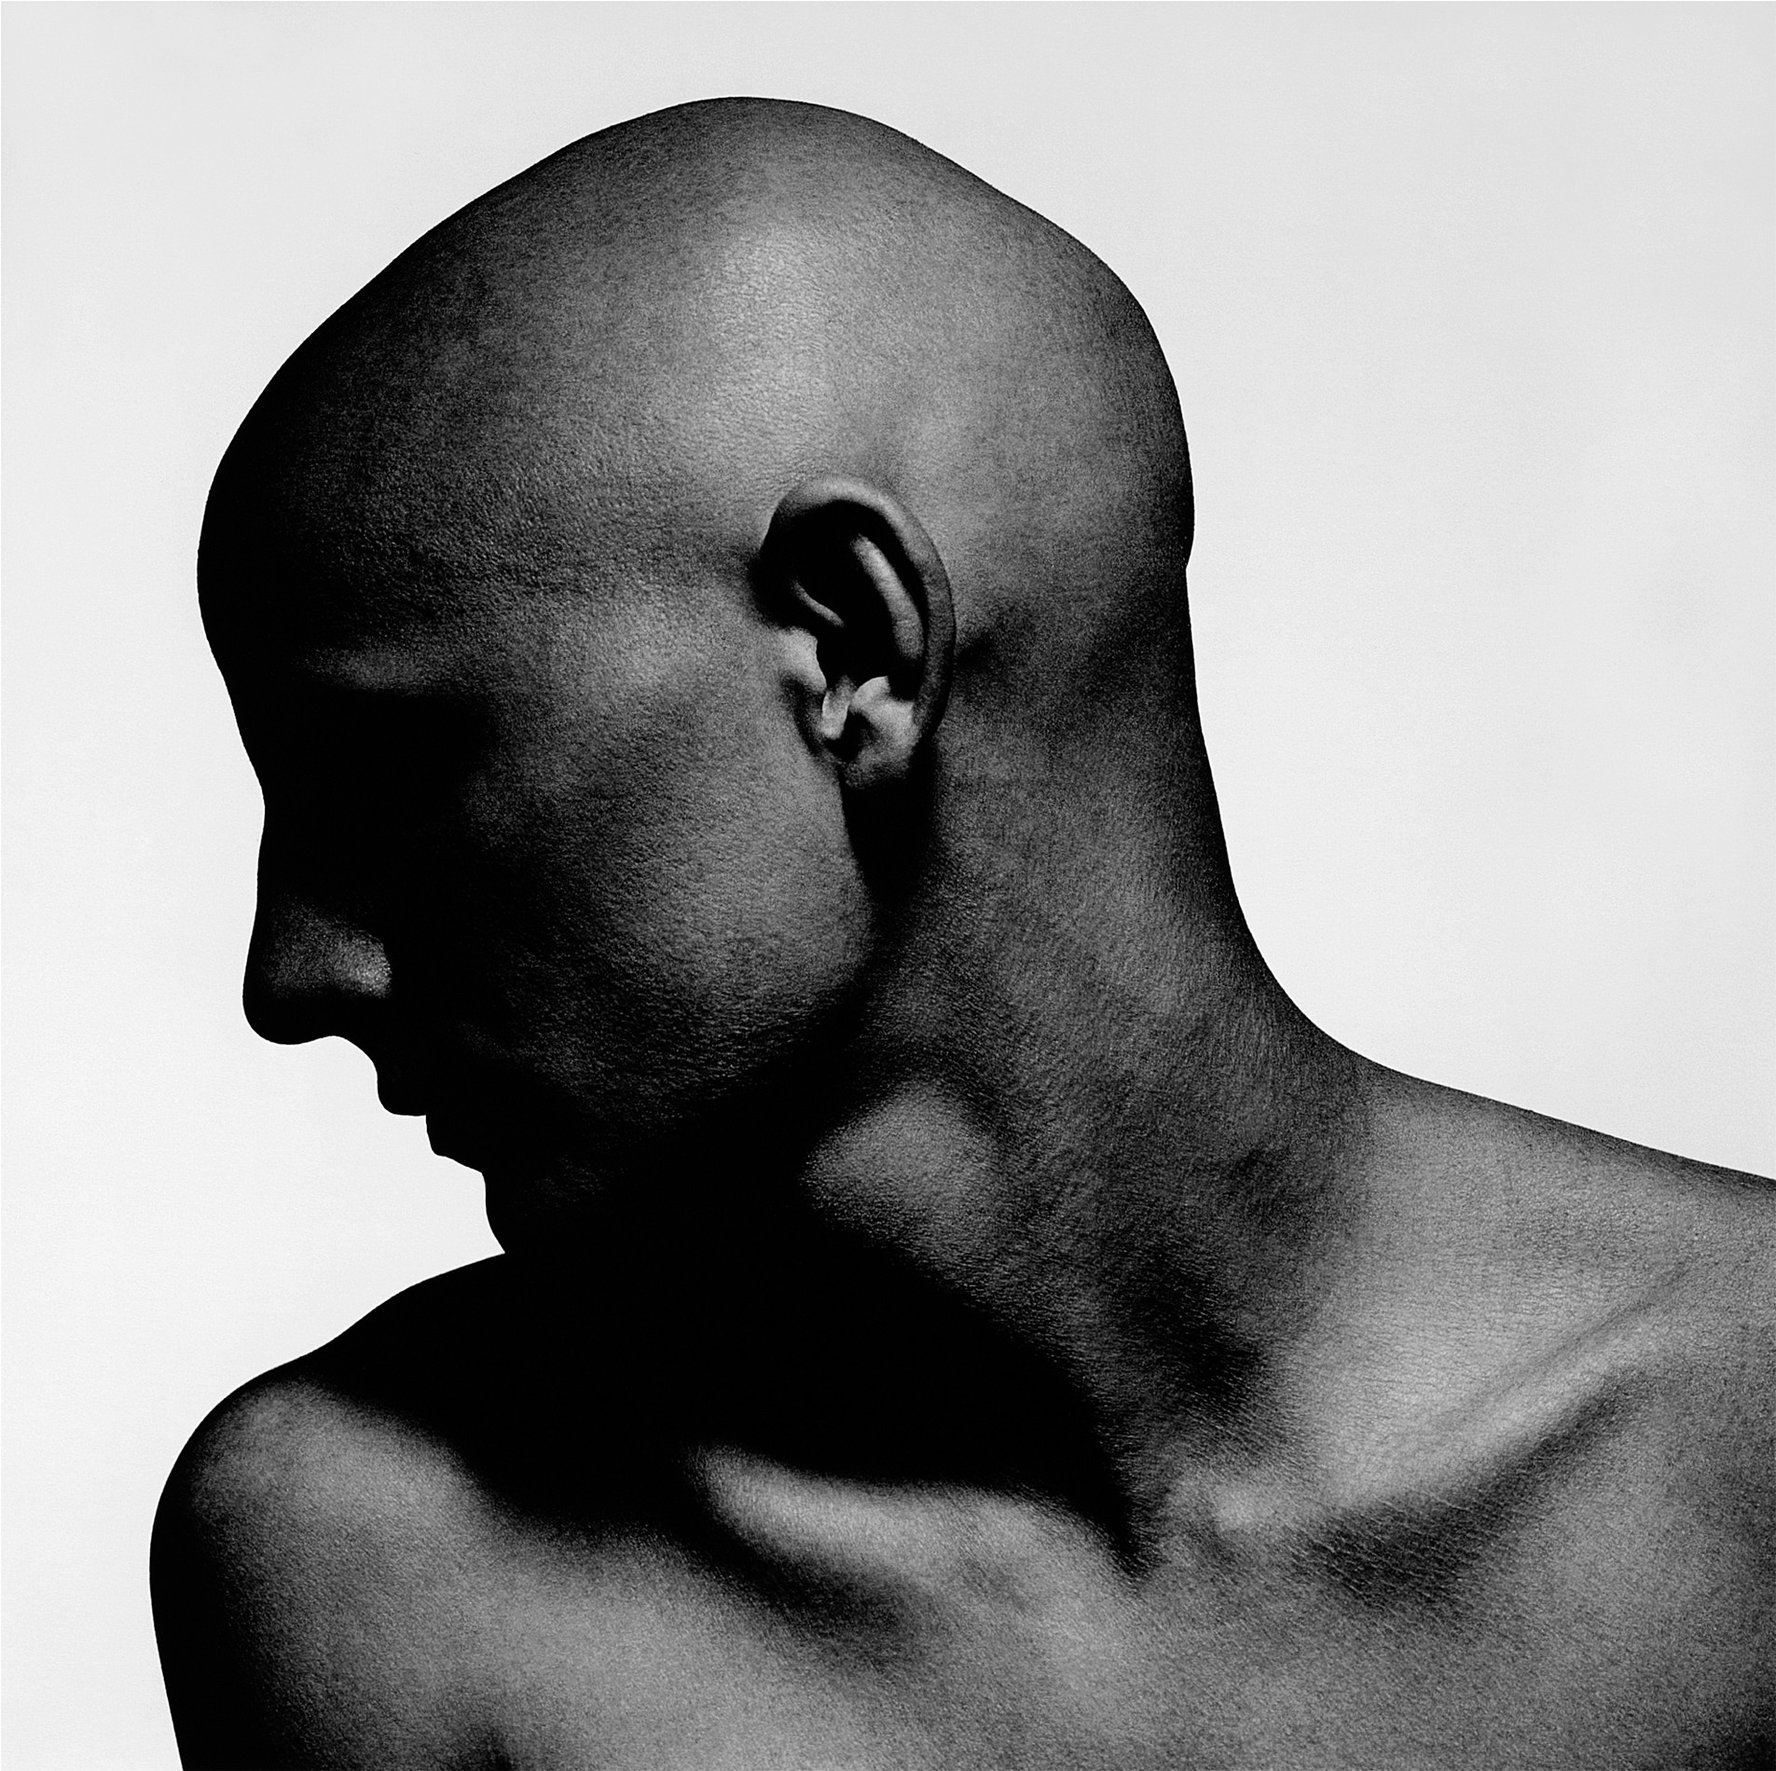 Dark portrait of bald male with strong profile